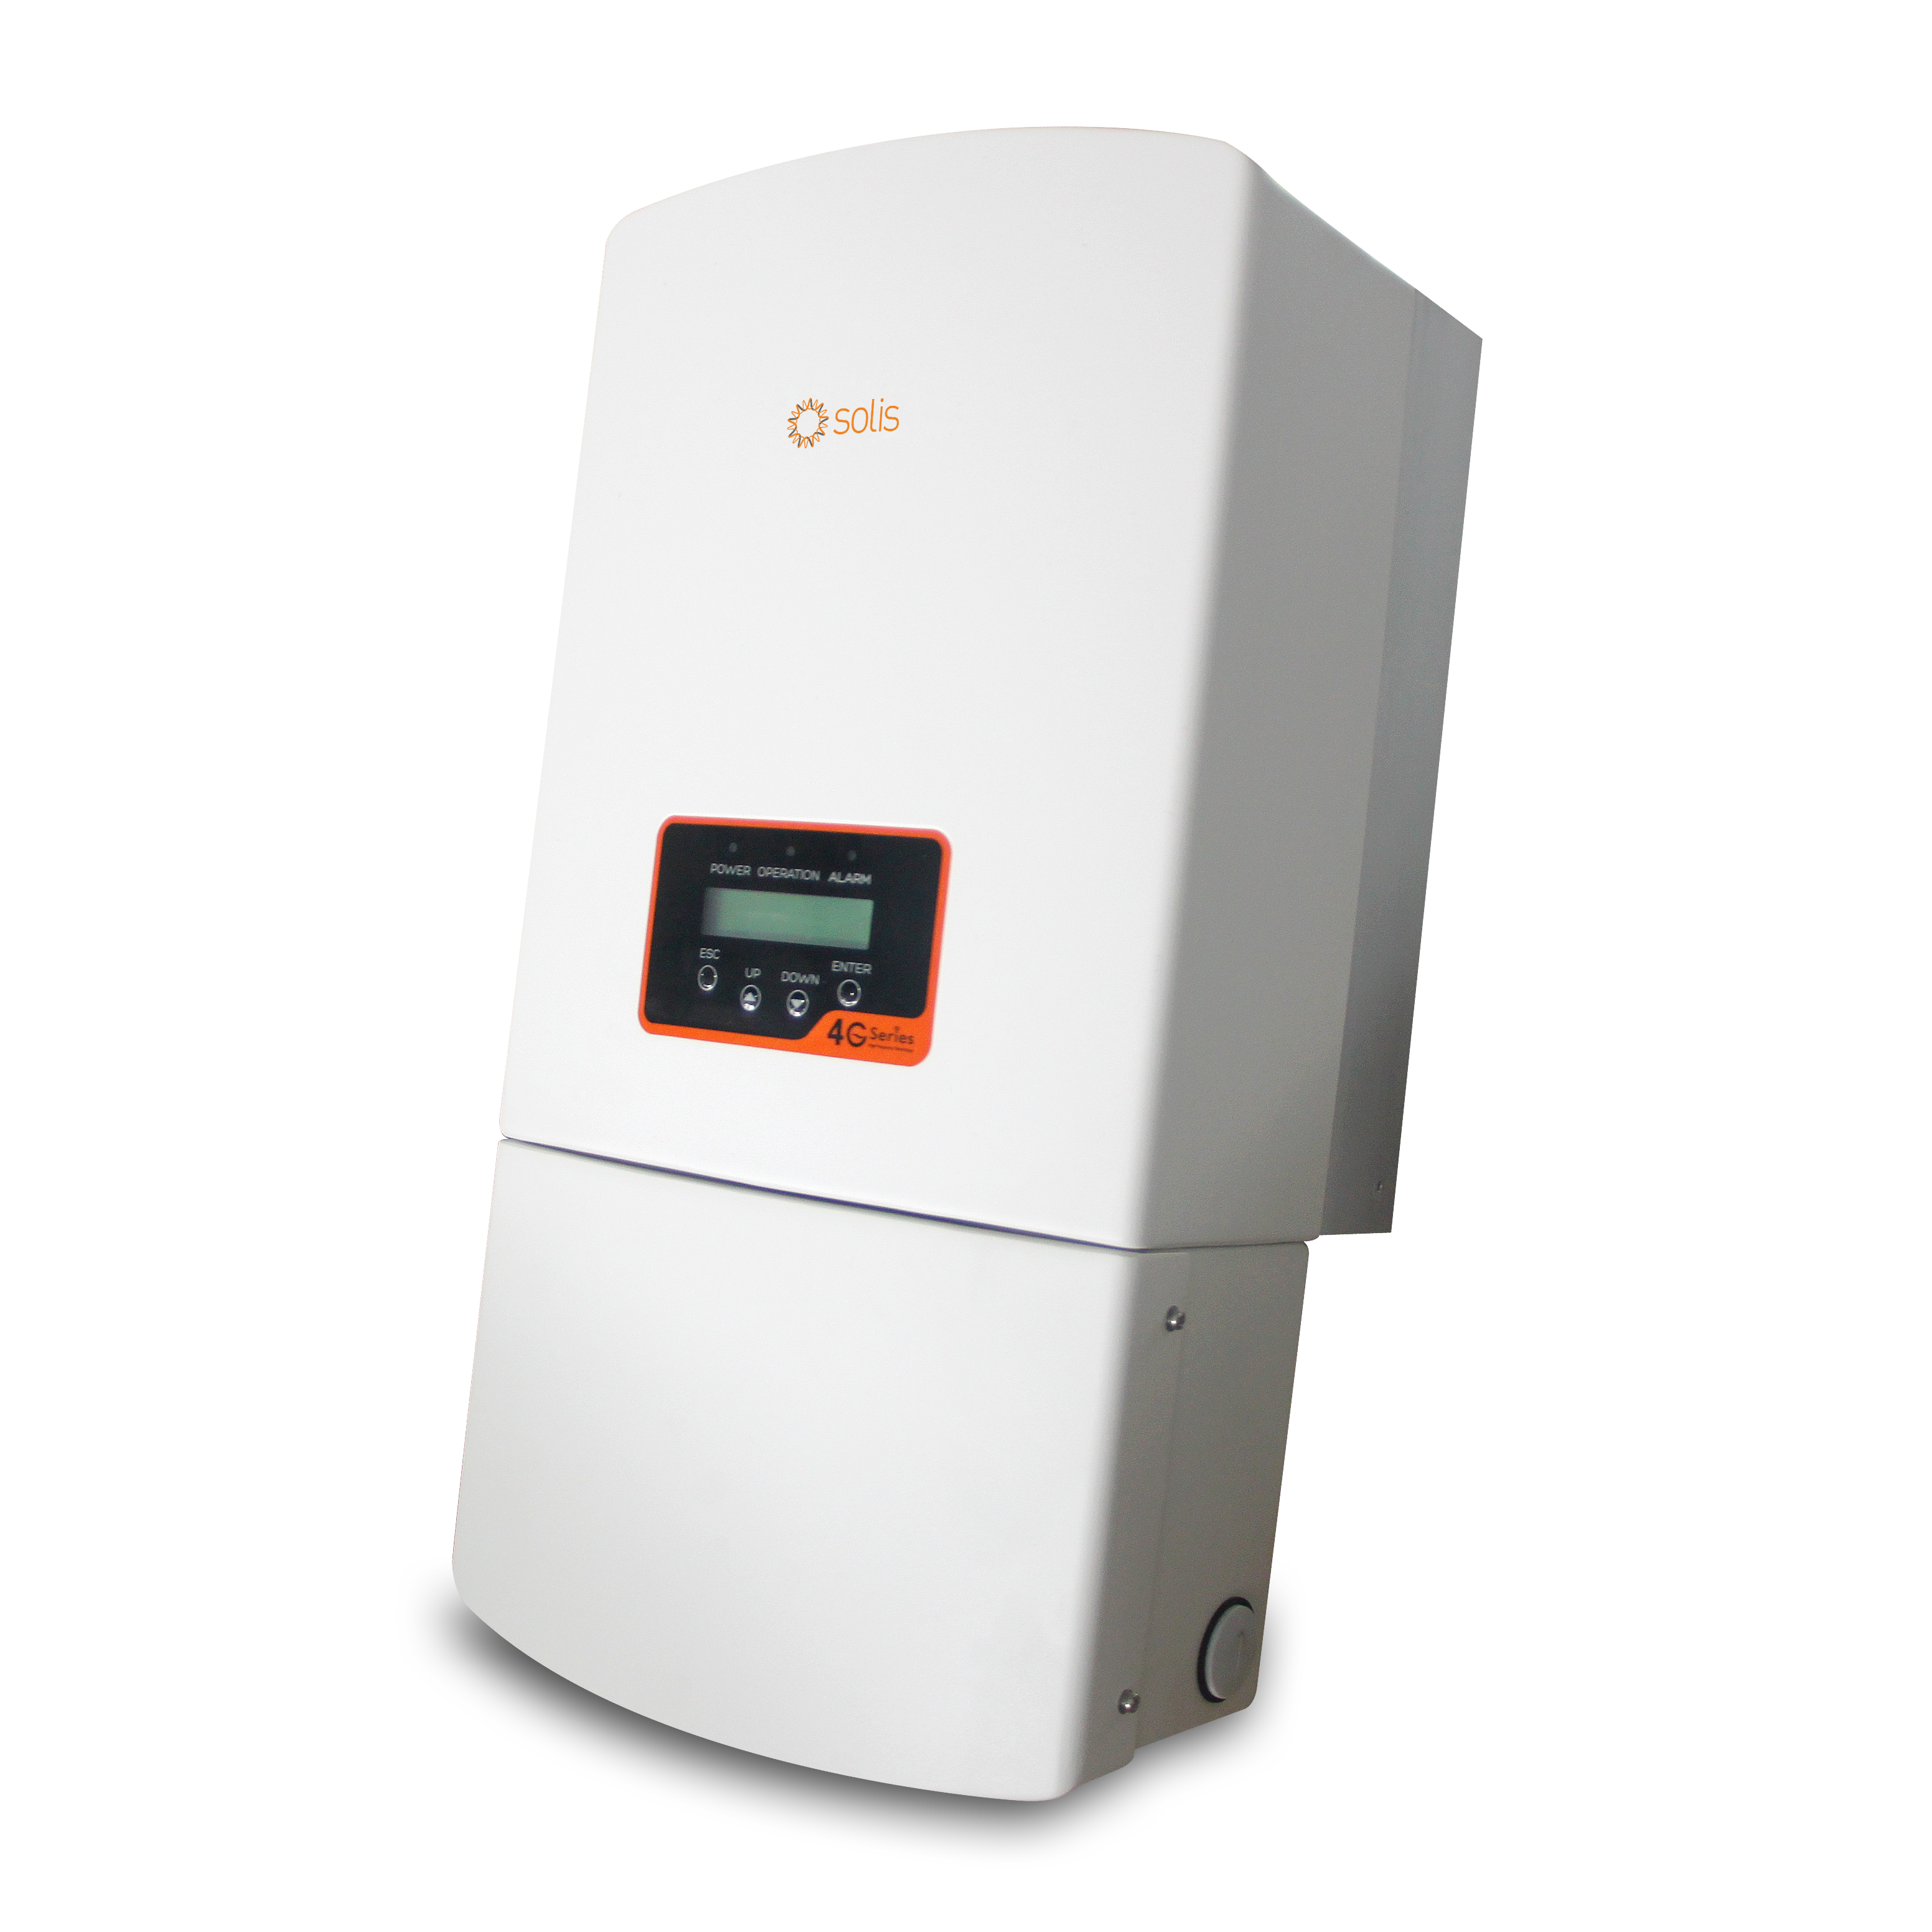 Solis 5kW 4G 1Ph US Inverter, Solis-1P5K-4G-US